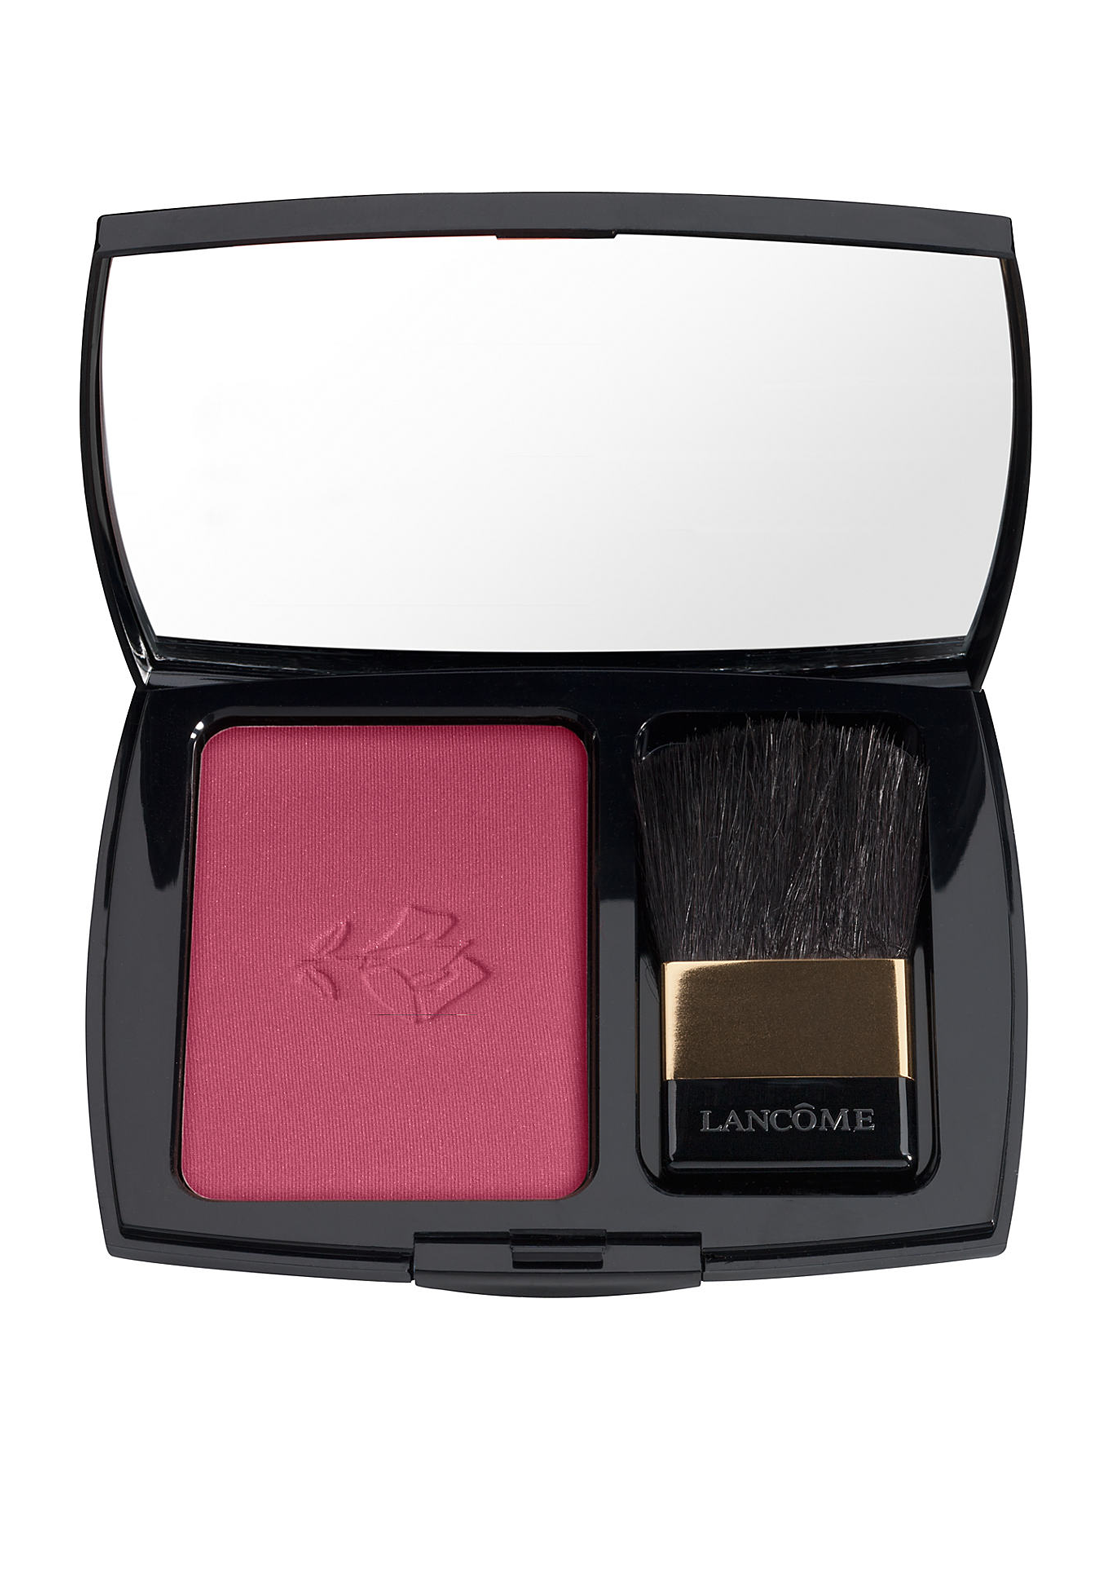 Lancome Blush Subtil Long Lasting Powder Blusher, 041